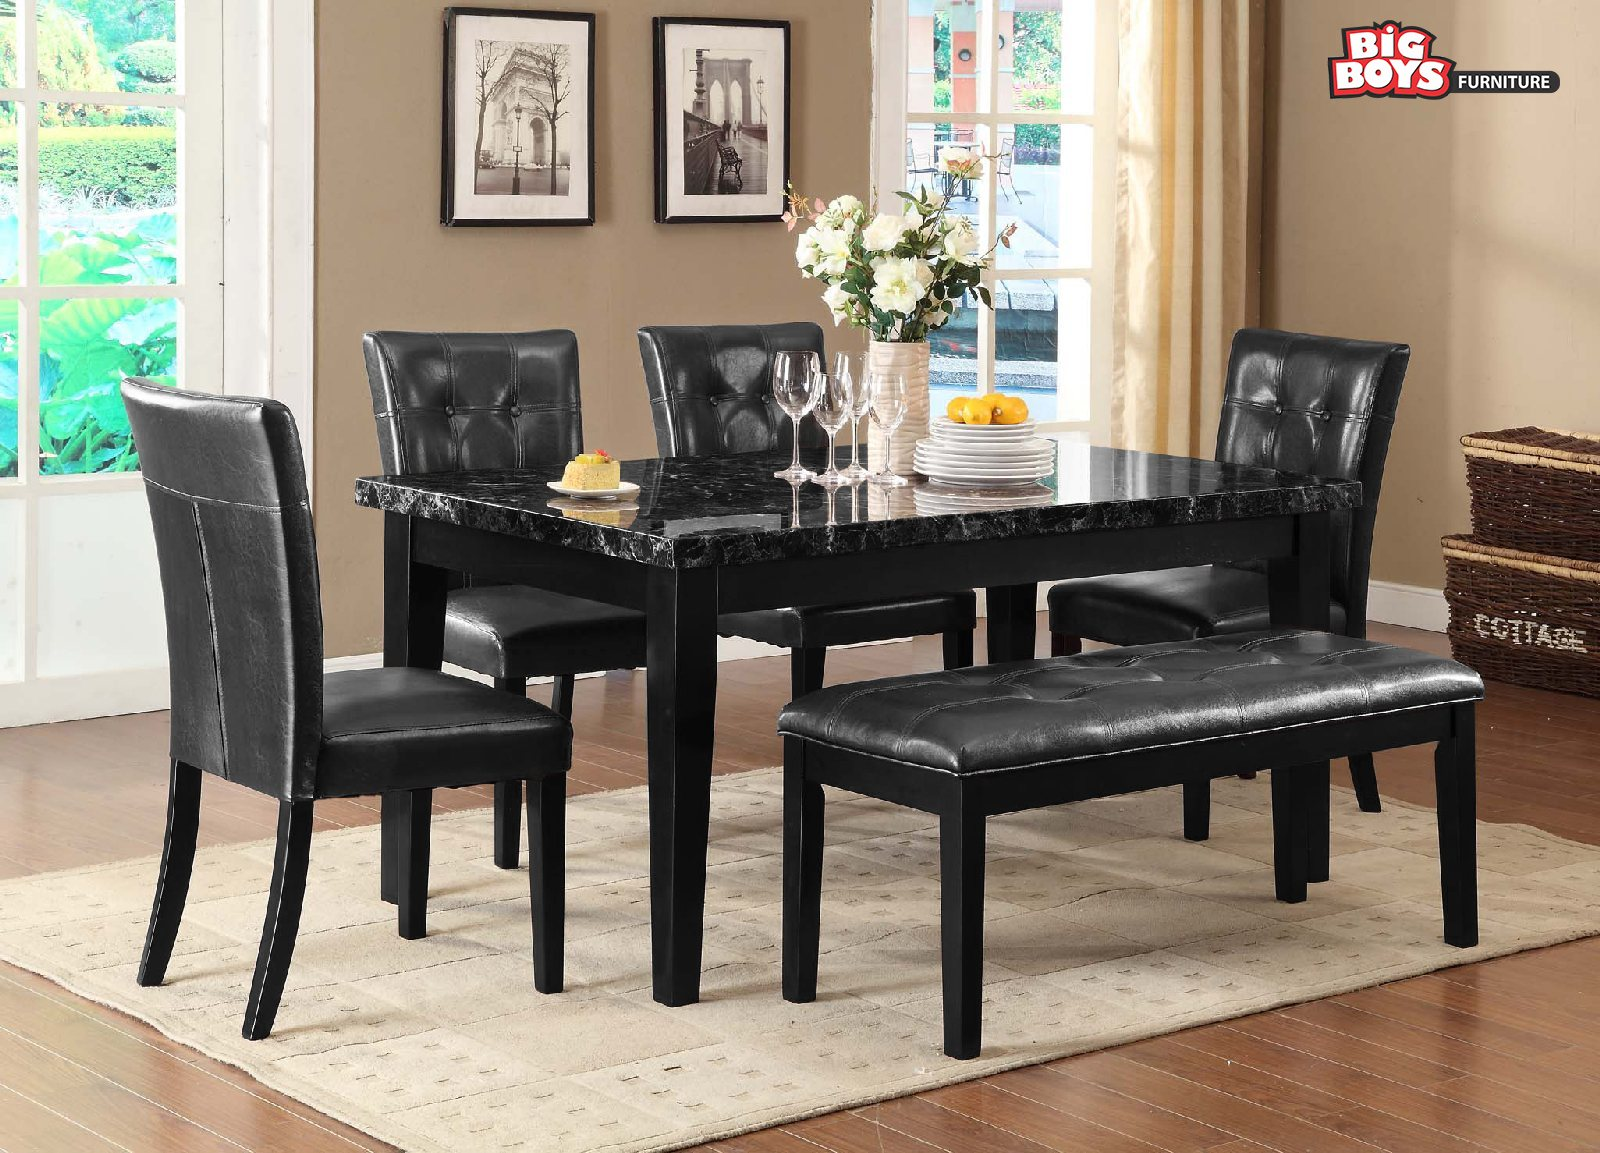 012-Big-Boys-Furniture-Delta-2544BLACK-1